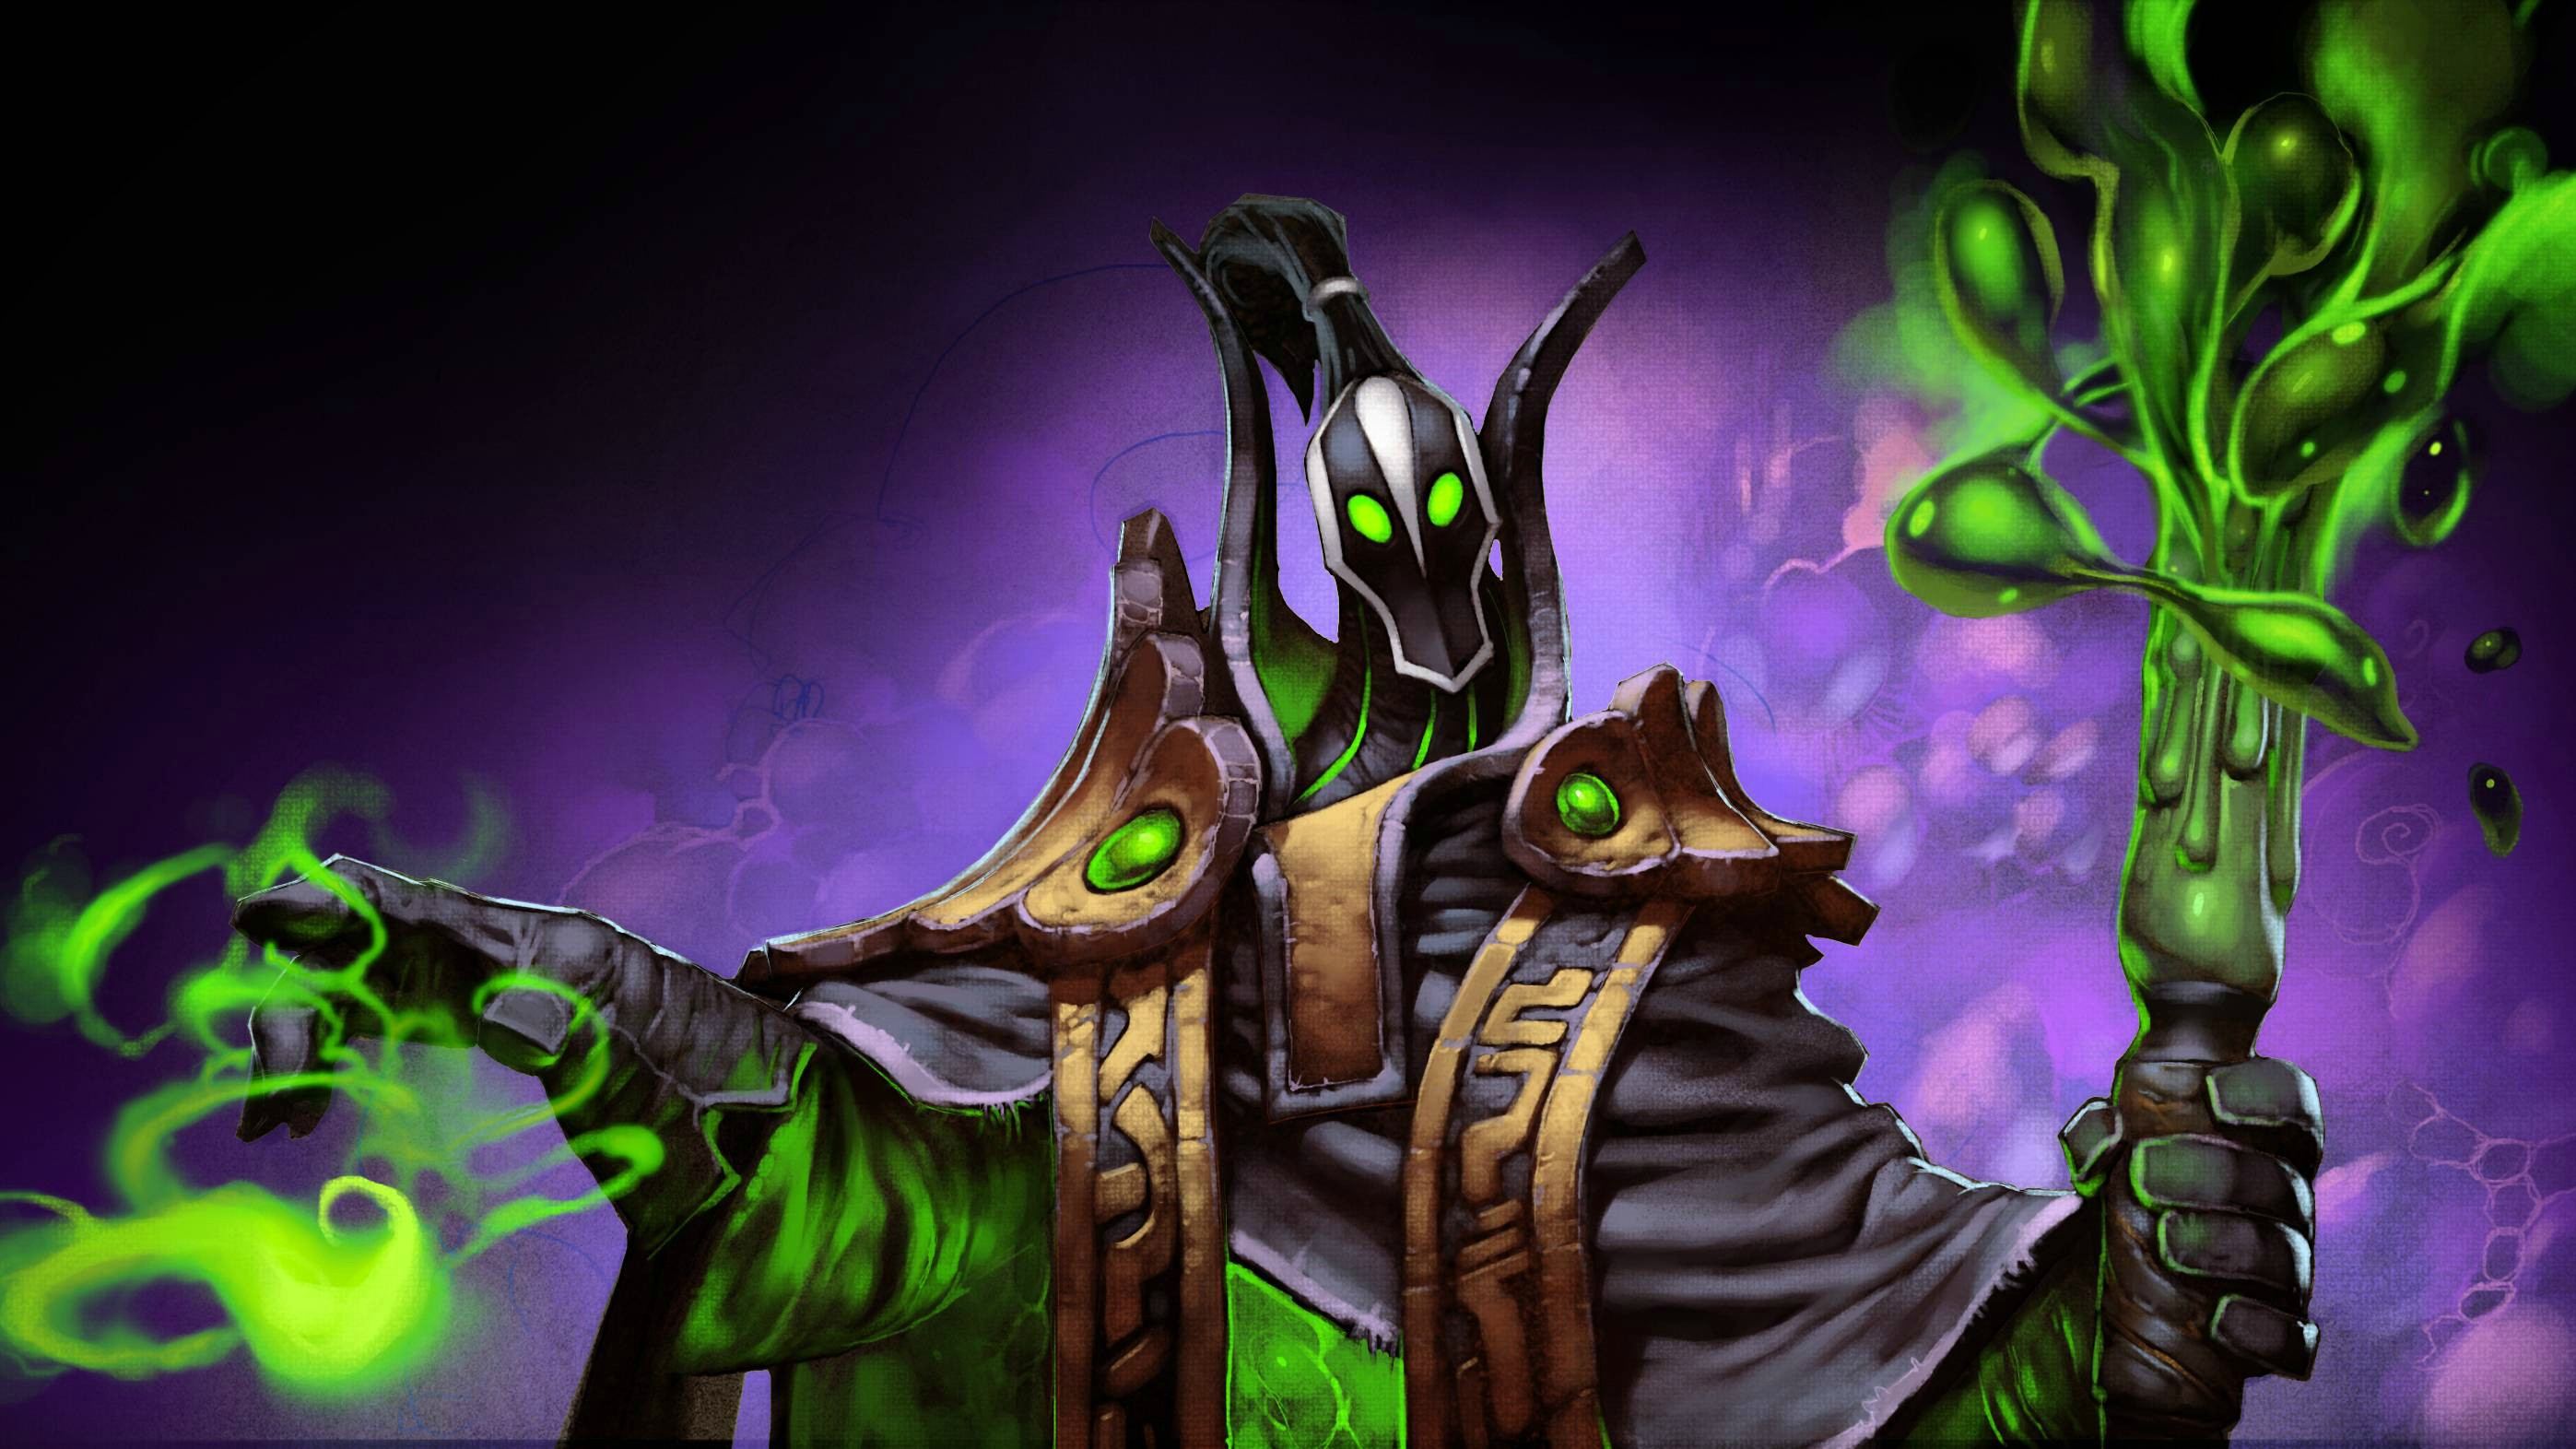 Dota 2 Rubick wallpapers